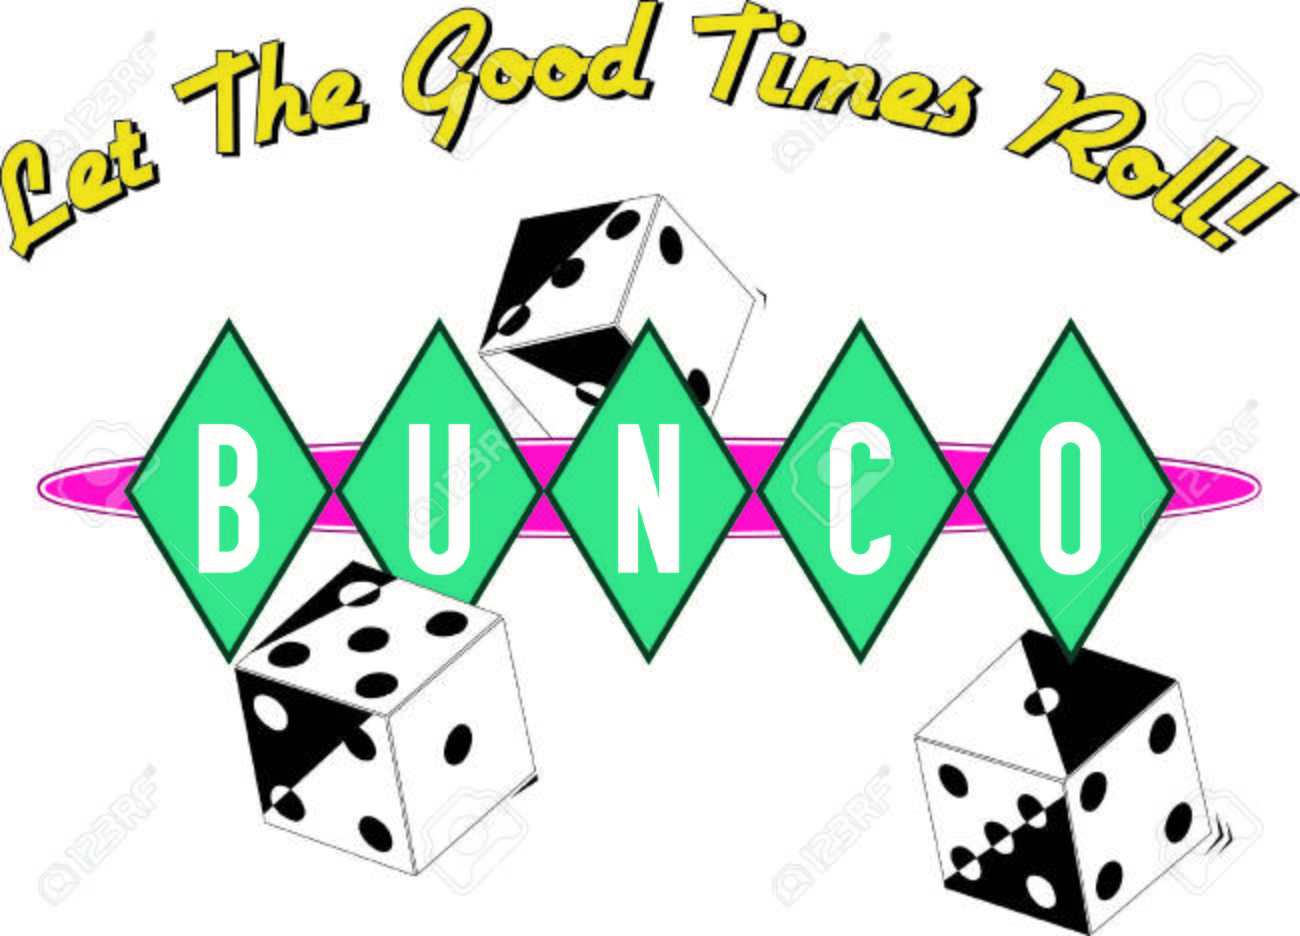 135 bunco stock vector illustration and royalty free bunco clipart rh 123rf com bunco clipart free bunco clip art images